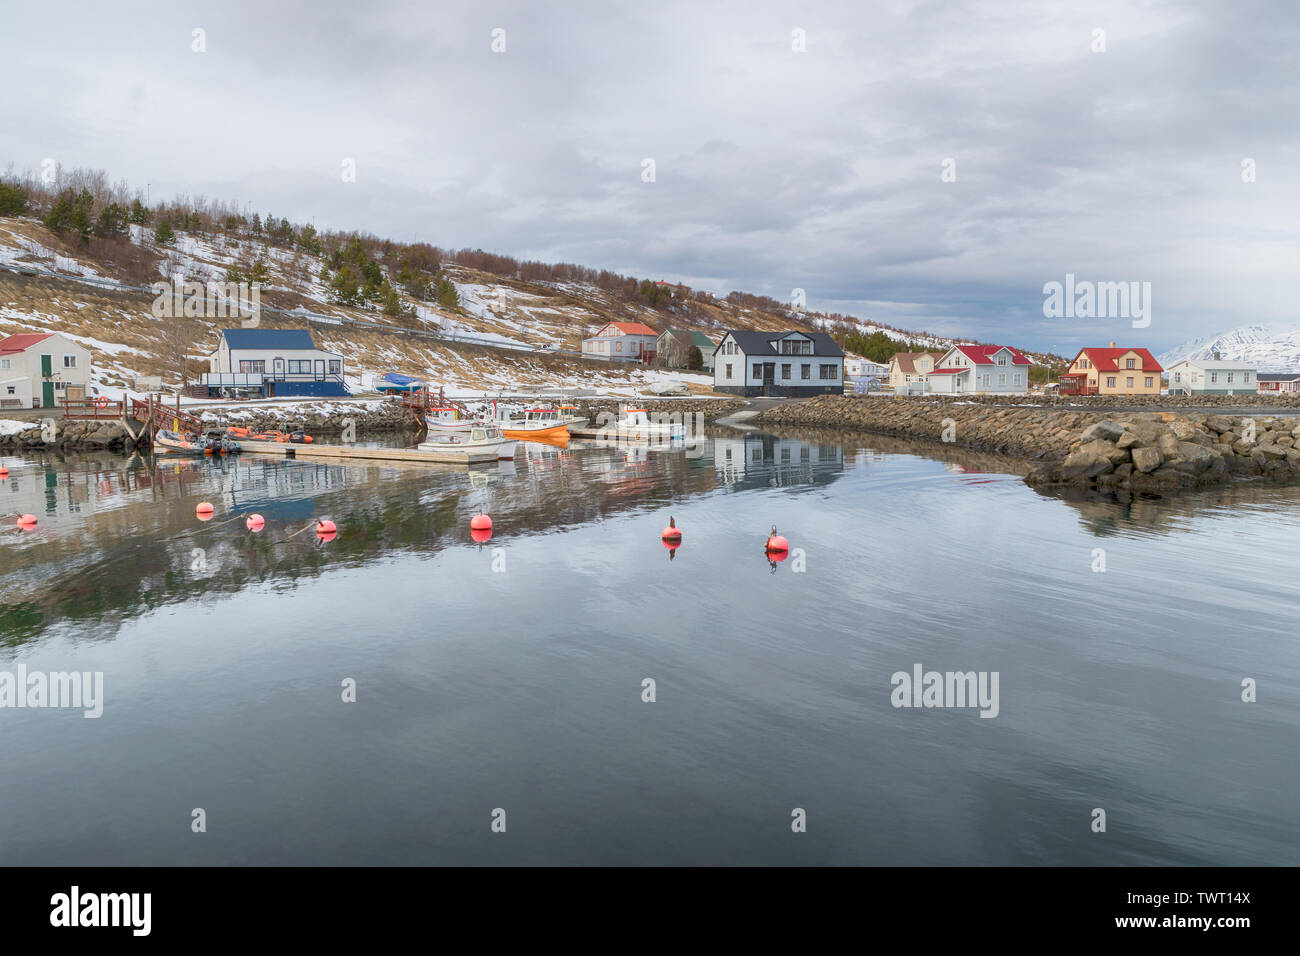 Looking across the harbour at Hjalteyri, Iceland - Stock Image